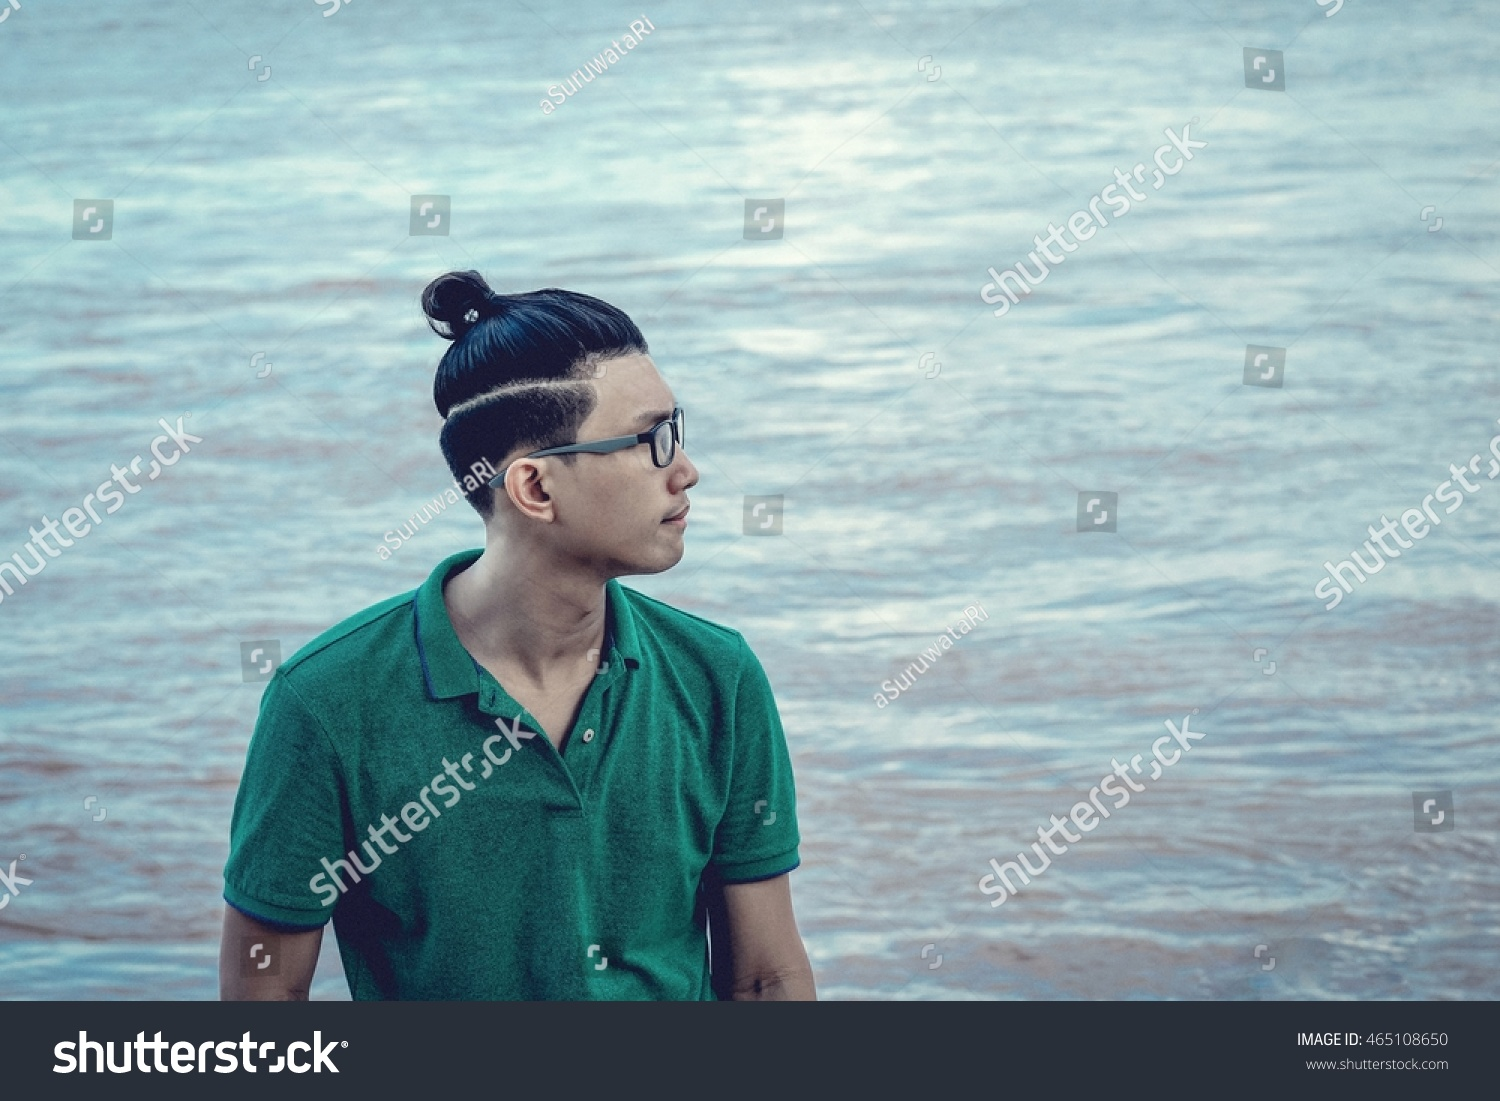 c2eda2c94df Asian hipster glasses man with man bun hair style on river water surface -  lifestyle in